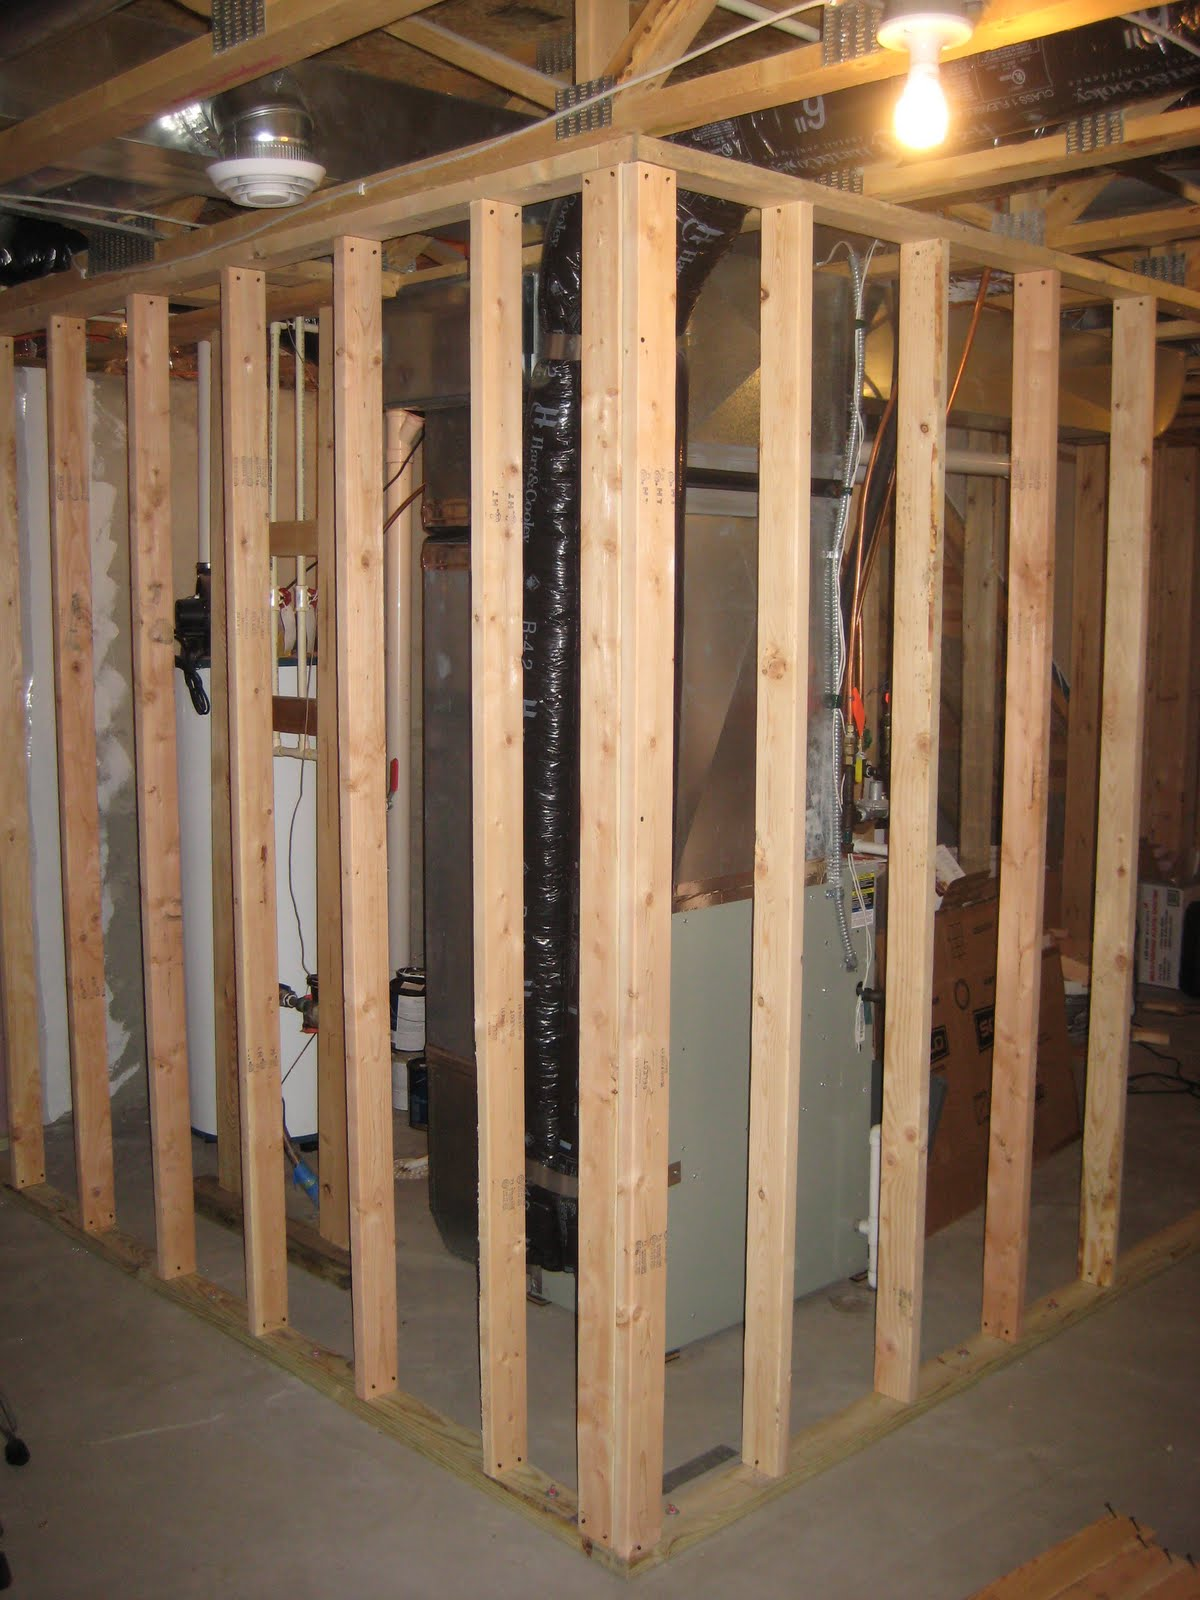 katie 39 s blog basement part 2 framing wiring and walls